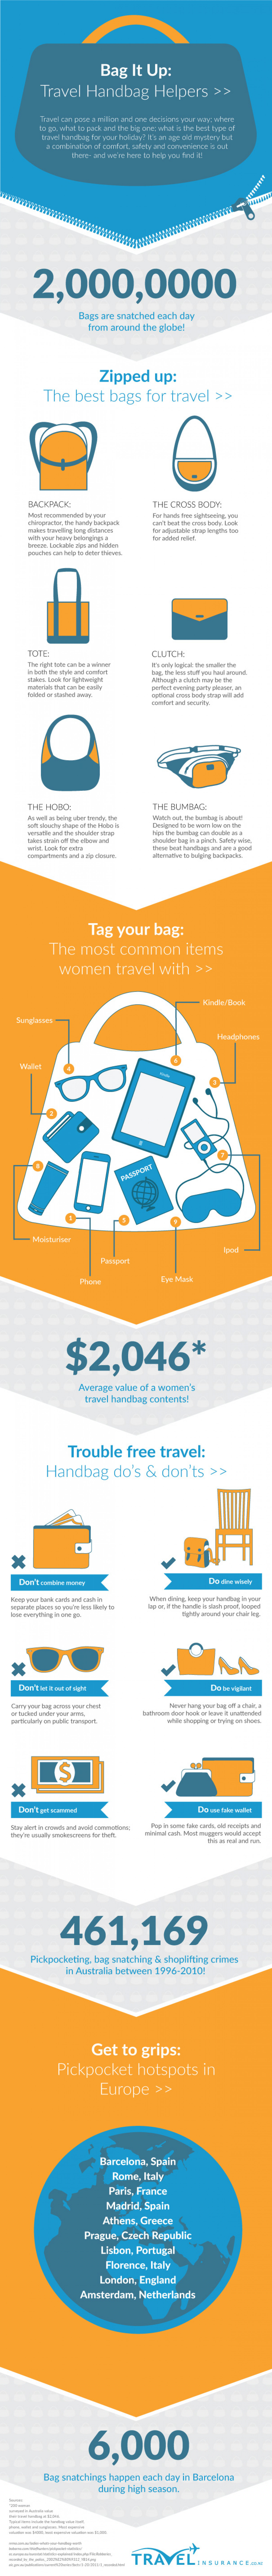 Carry on - travel handbag how-to infographic Infographic